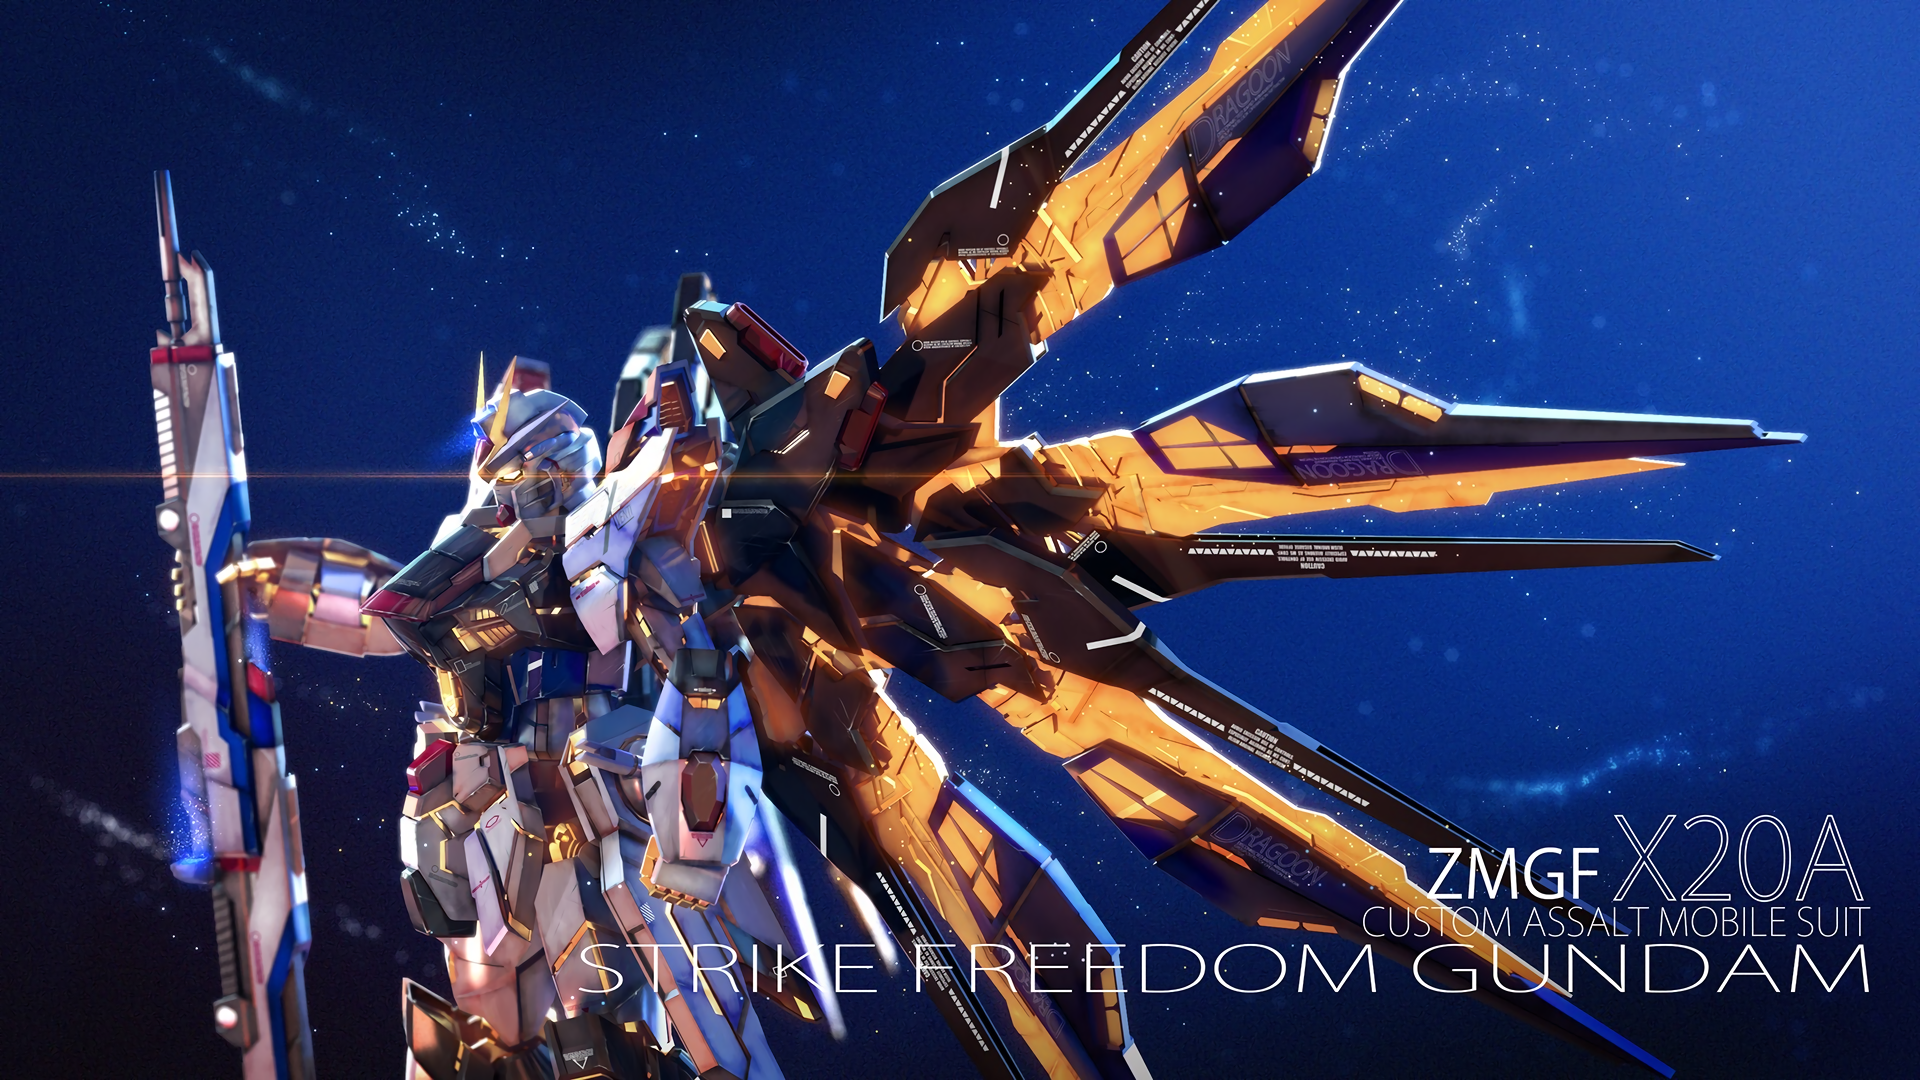 1920x1080 - Mobile Suit Gundam Seed Destiny Wallpapers 4